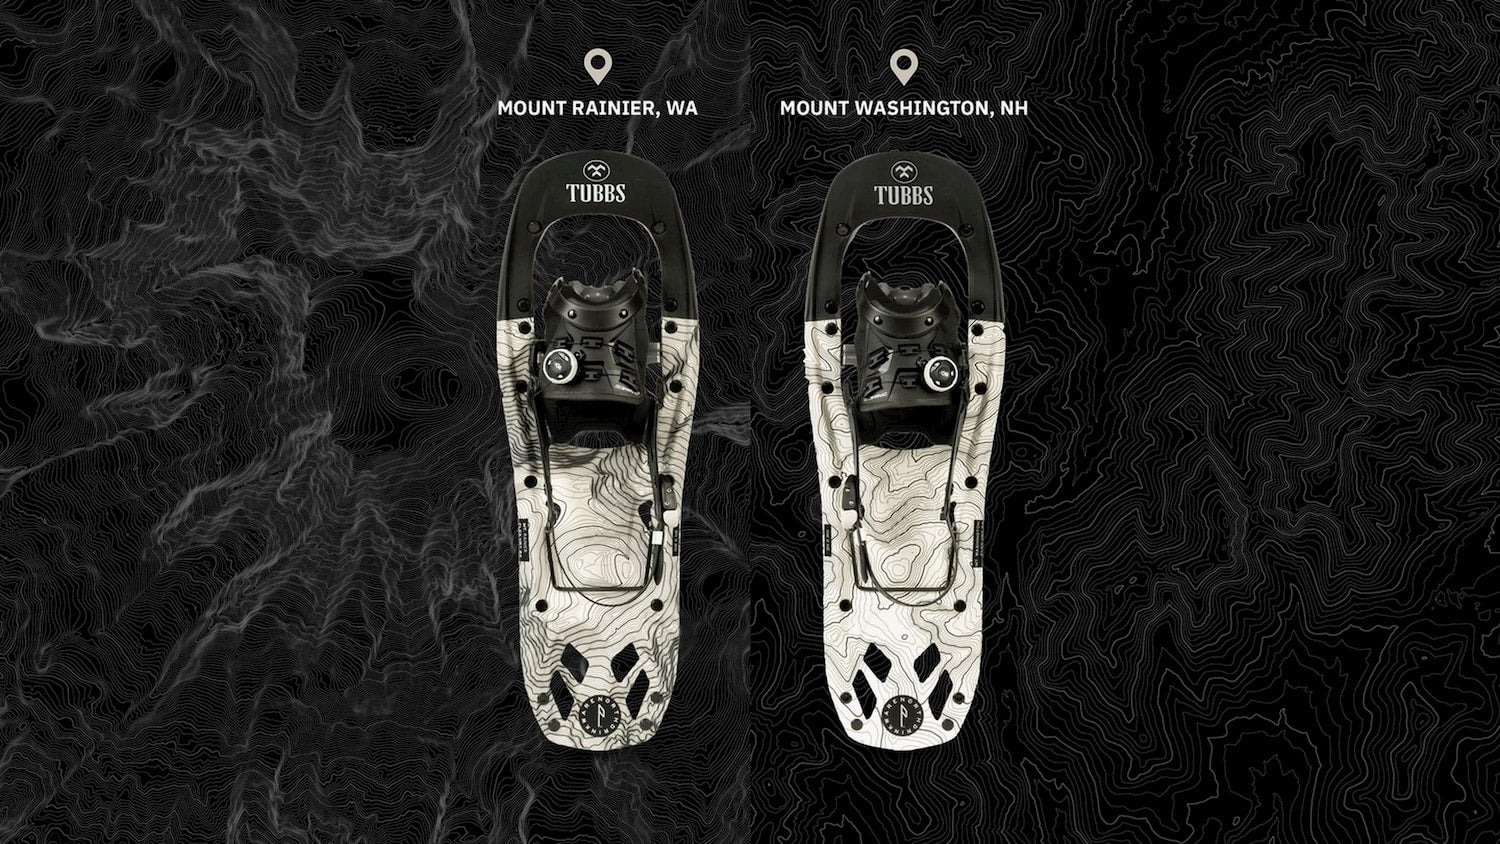 tubs snowshoes side by side